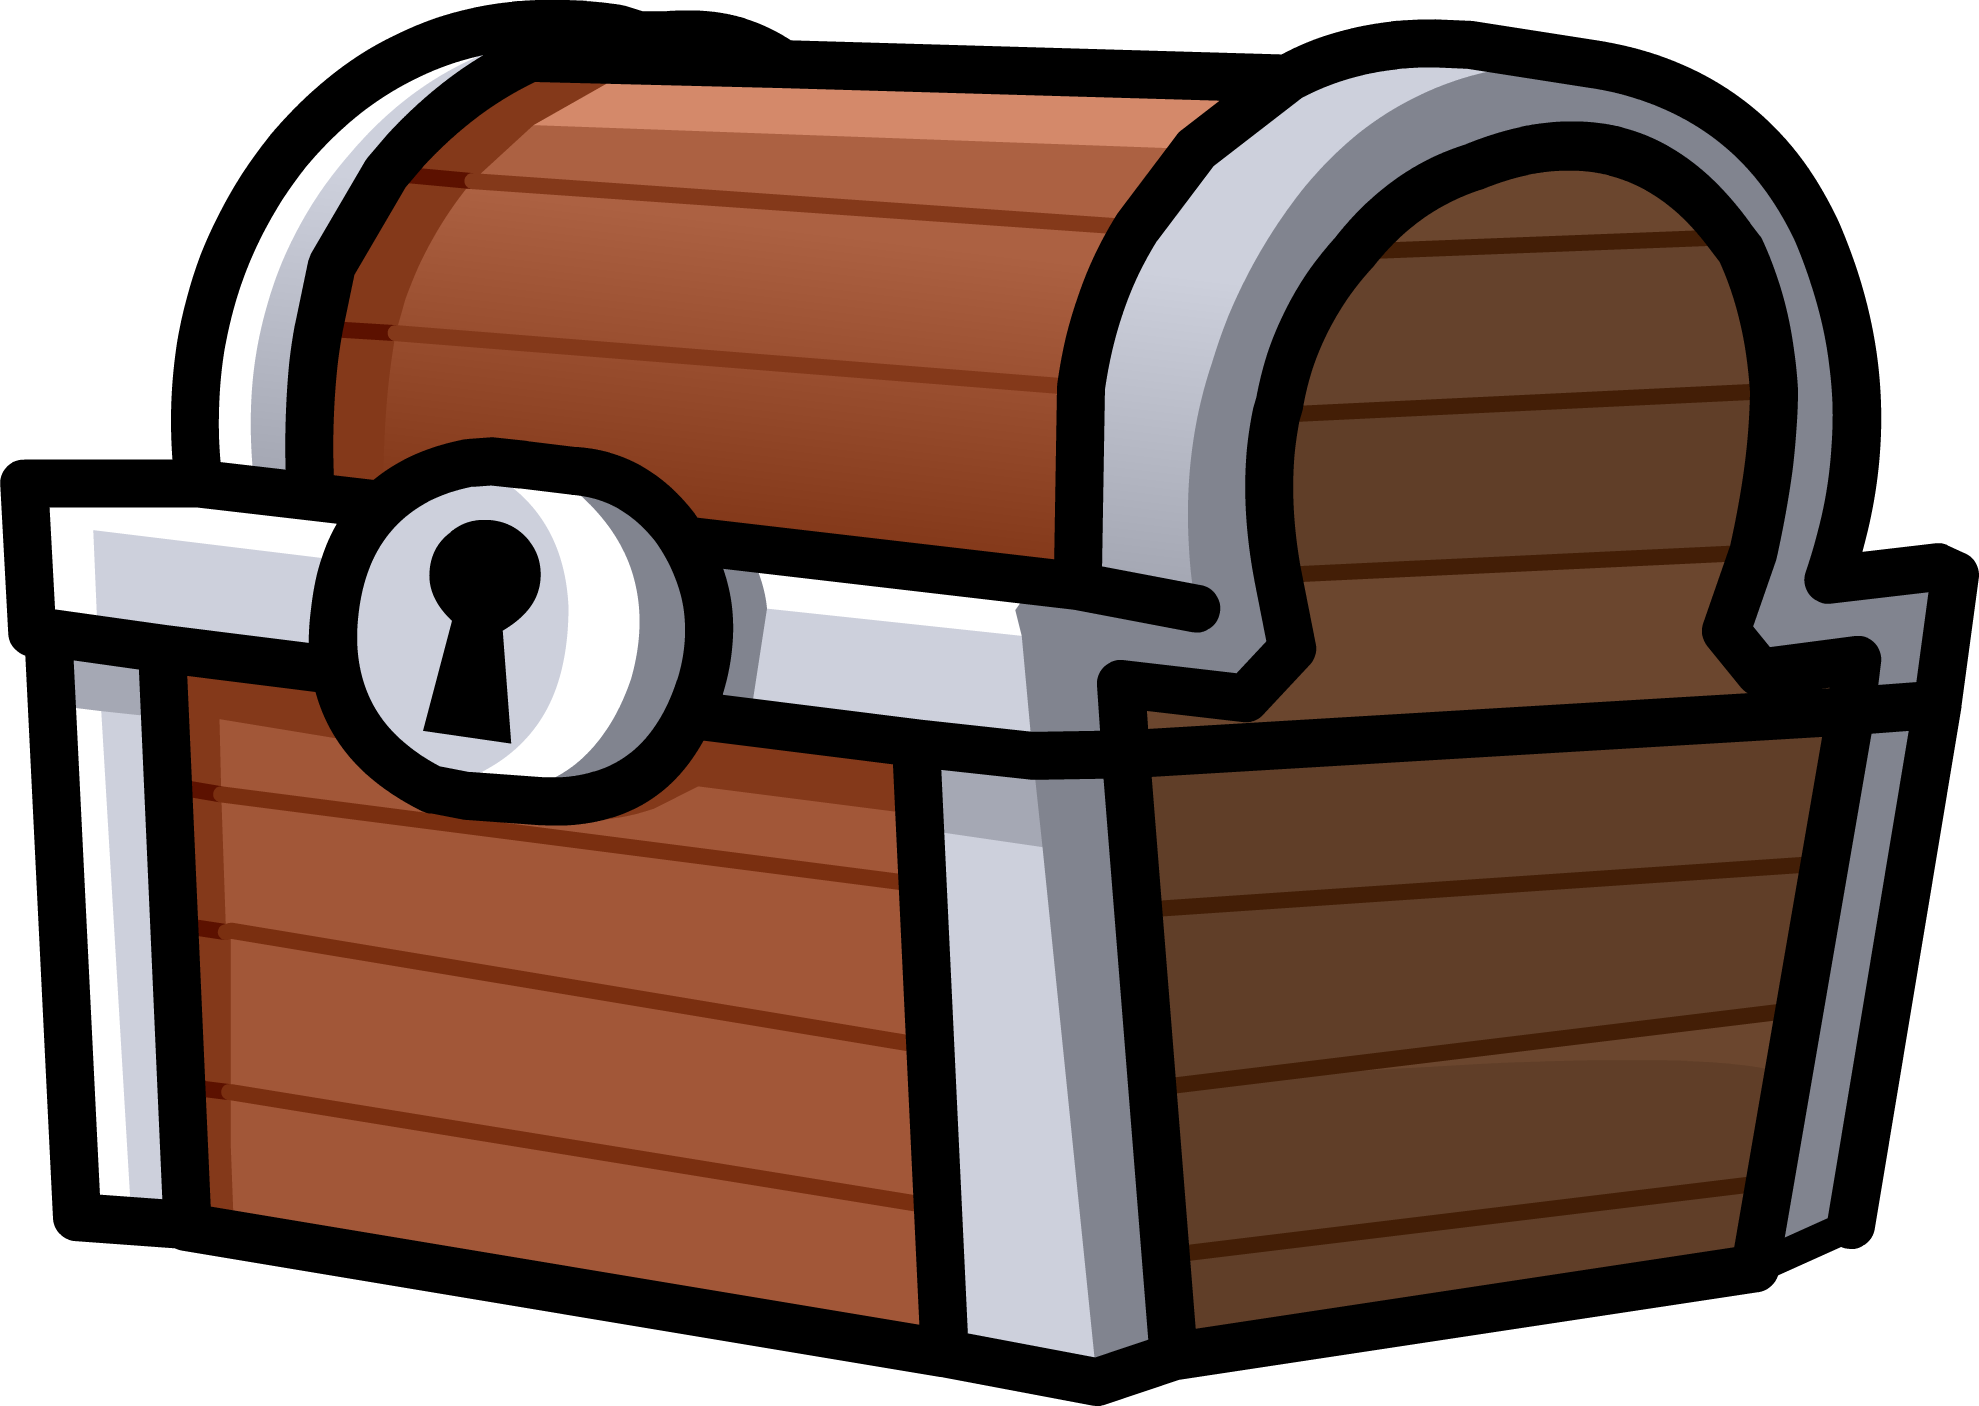 Treasure chest PNG images